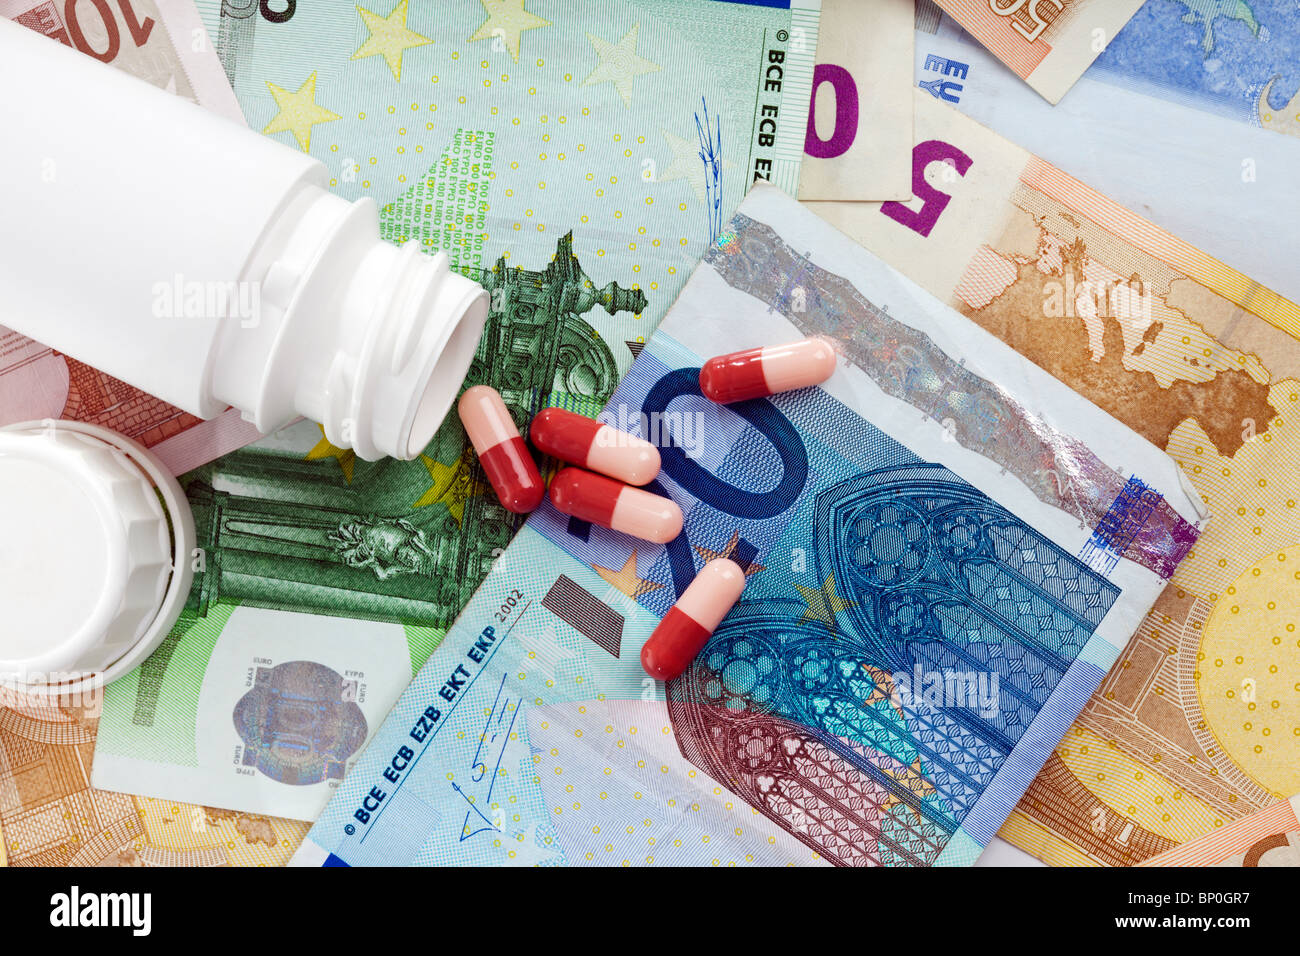 high cost of health care - medicine capsules falling from bottle onto european currency notes, view from above - Stock Image